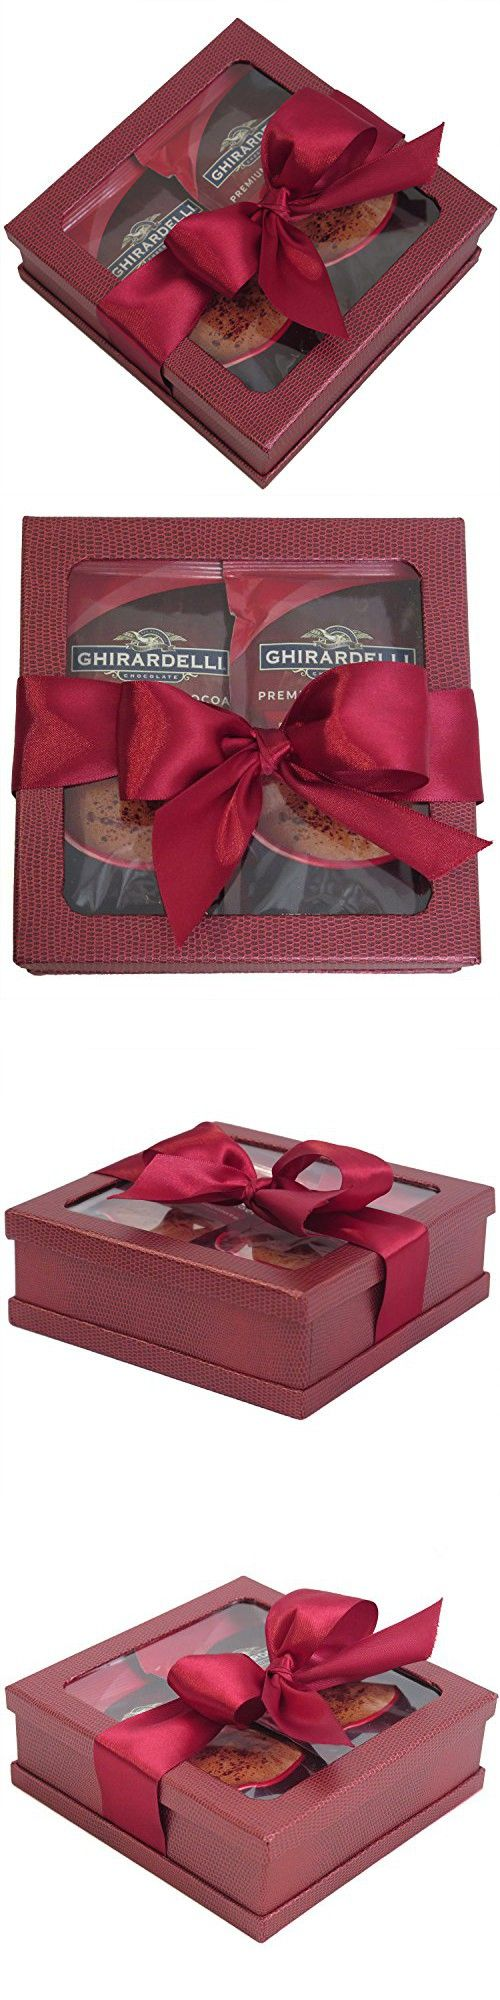 Holiday Hot Cocoa Drink Mix Gift Set for Christmas - Ghirardelli Hot Cocoa Gift - Best Coffee Gift Set - Best Gift for Coworkers, Friends, Boss Etc. - Coffee Gift (Burgundy)